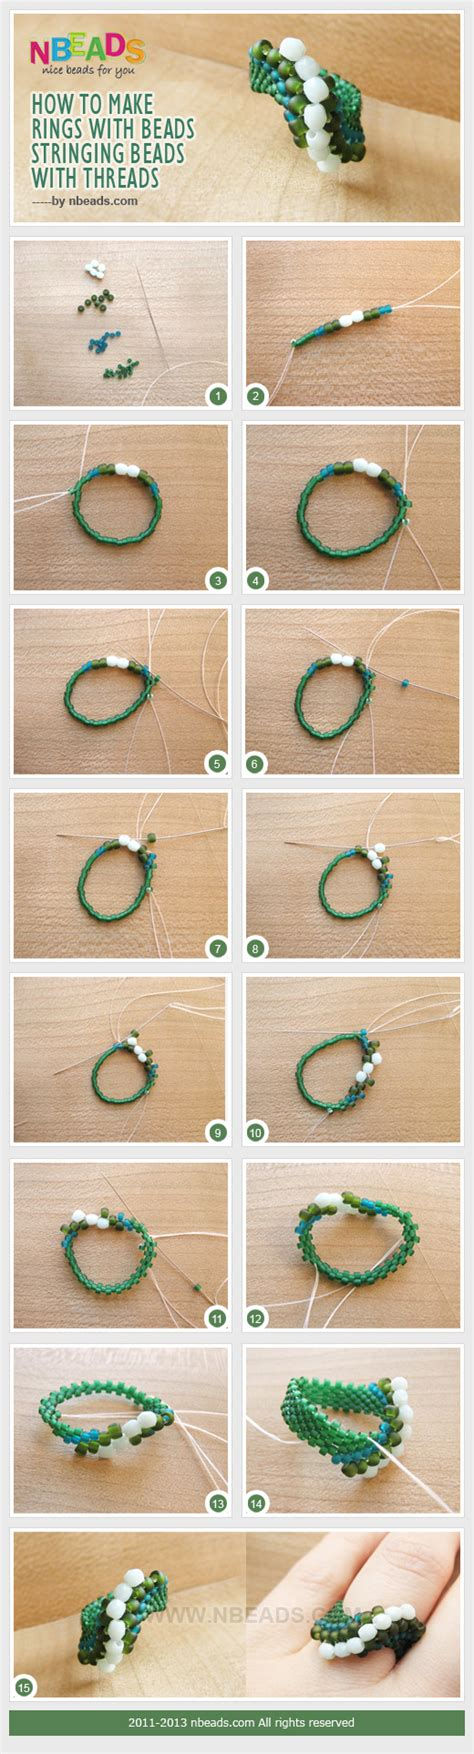 how to make beaded rings how to make rings with stringing with